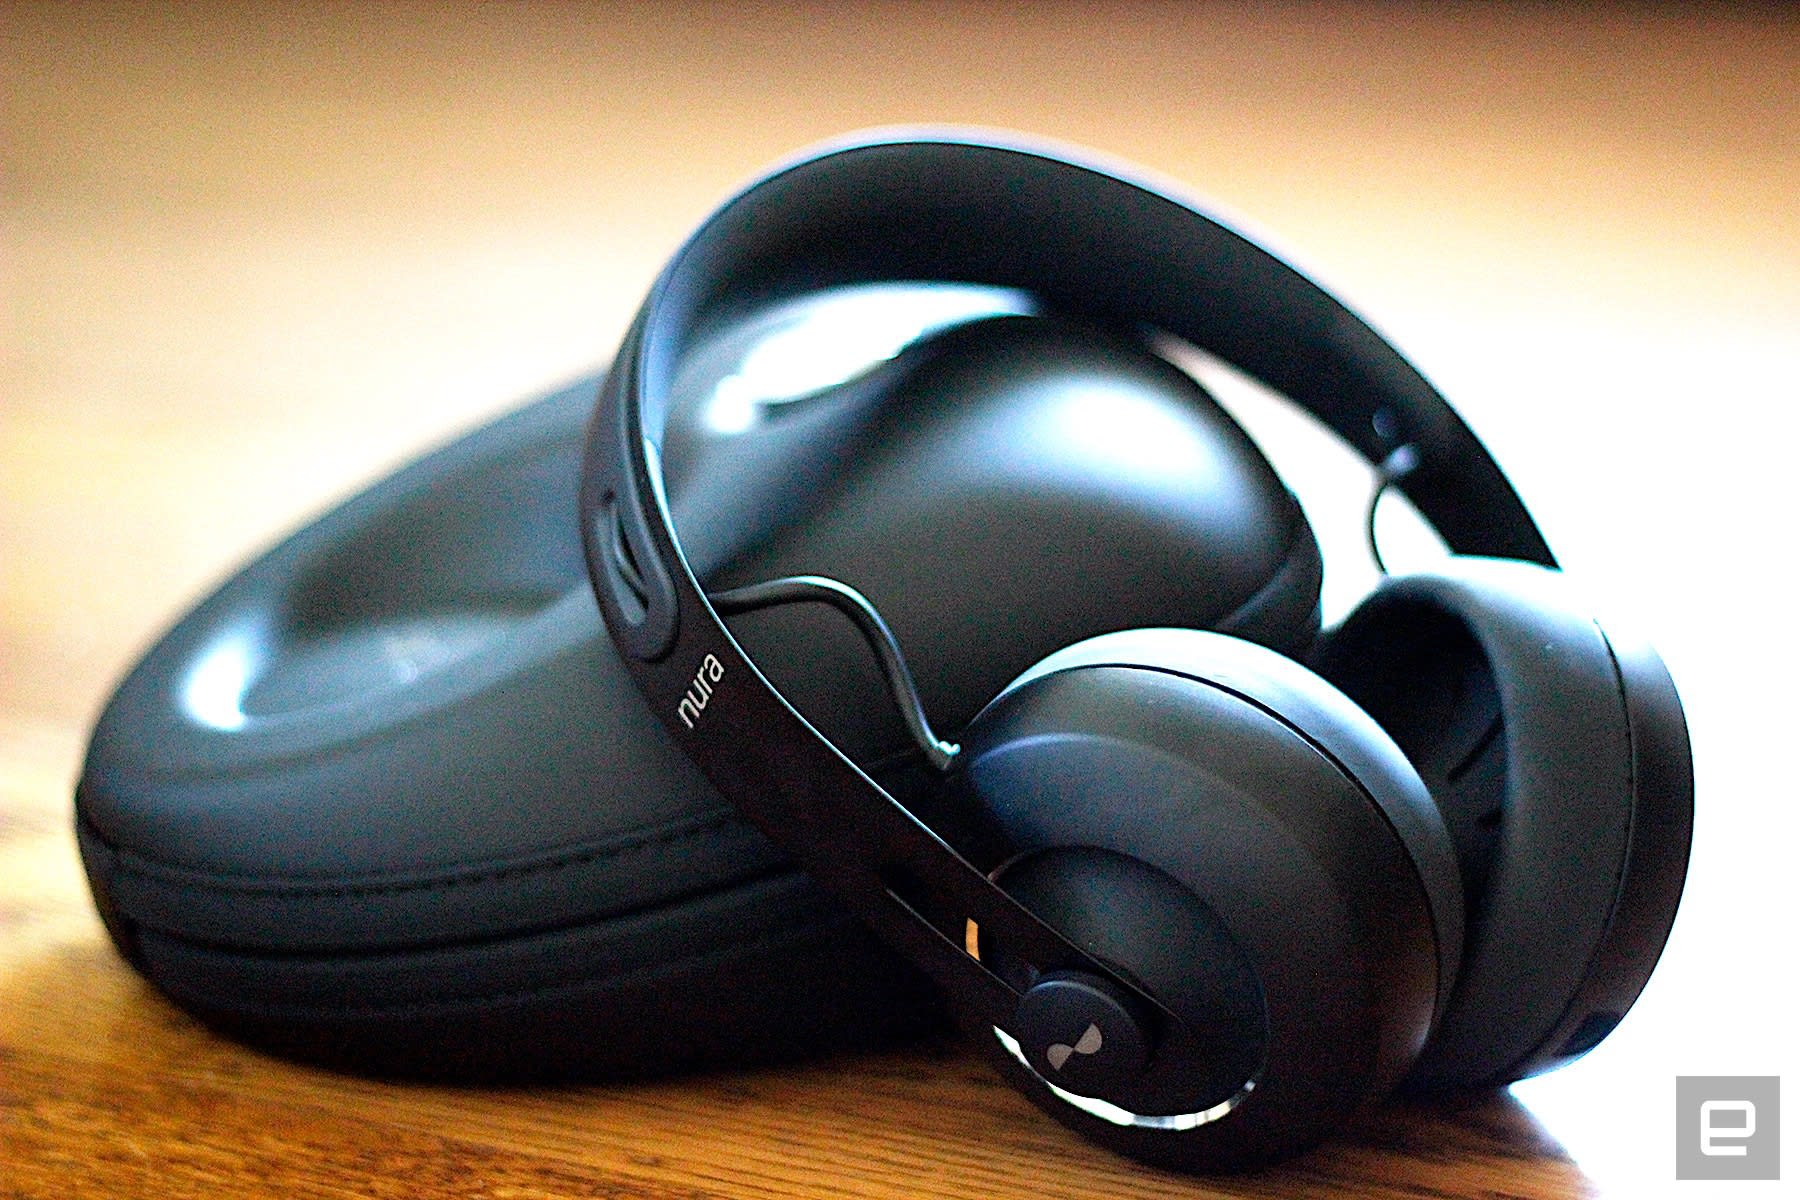 56306bd06db Nuraphones update adds noise-cancellation and 'transparency' mode